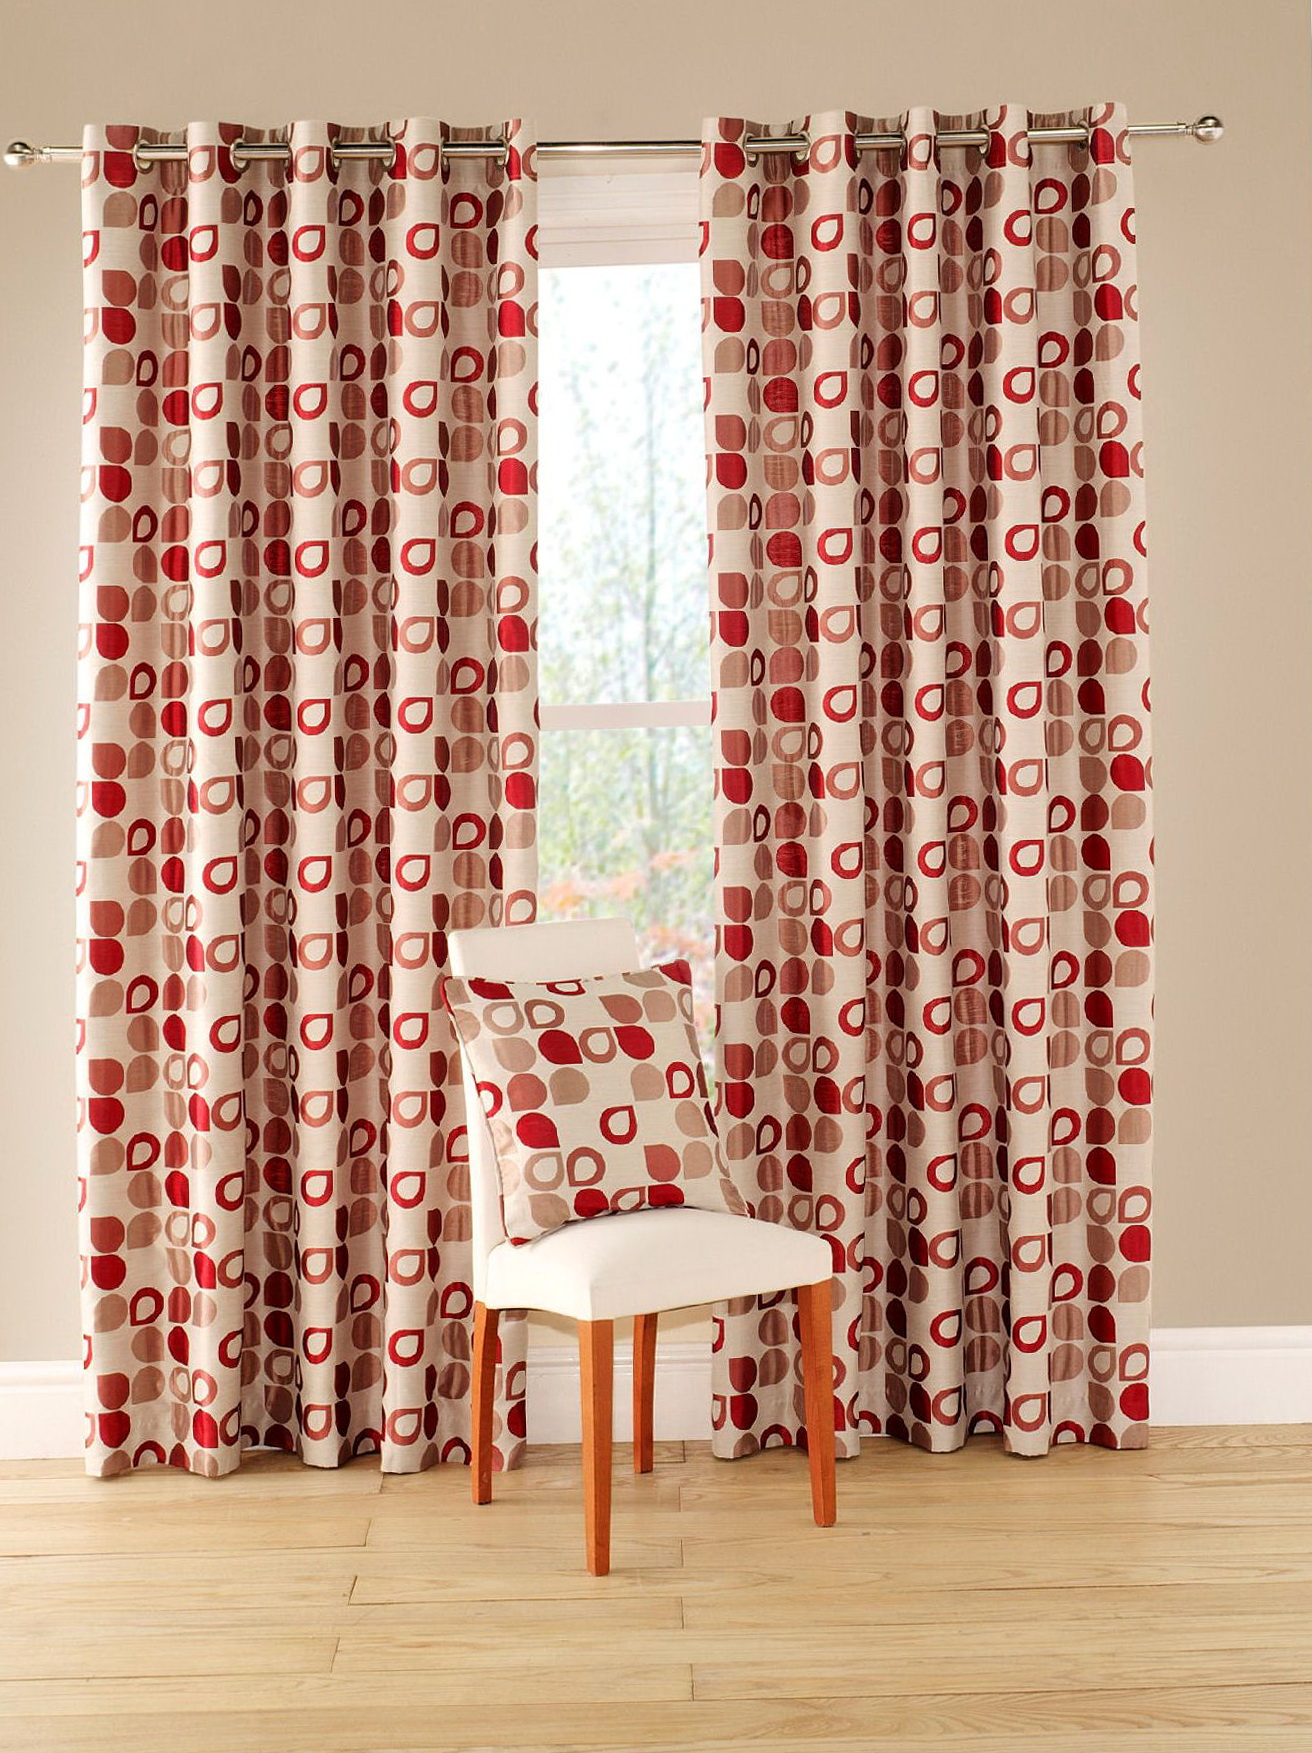 chair covers leather folding hs code red geometric pattern curtains | home design ideas